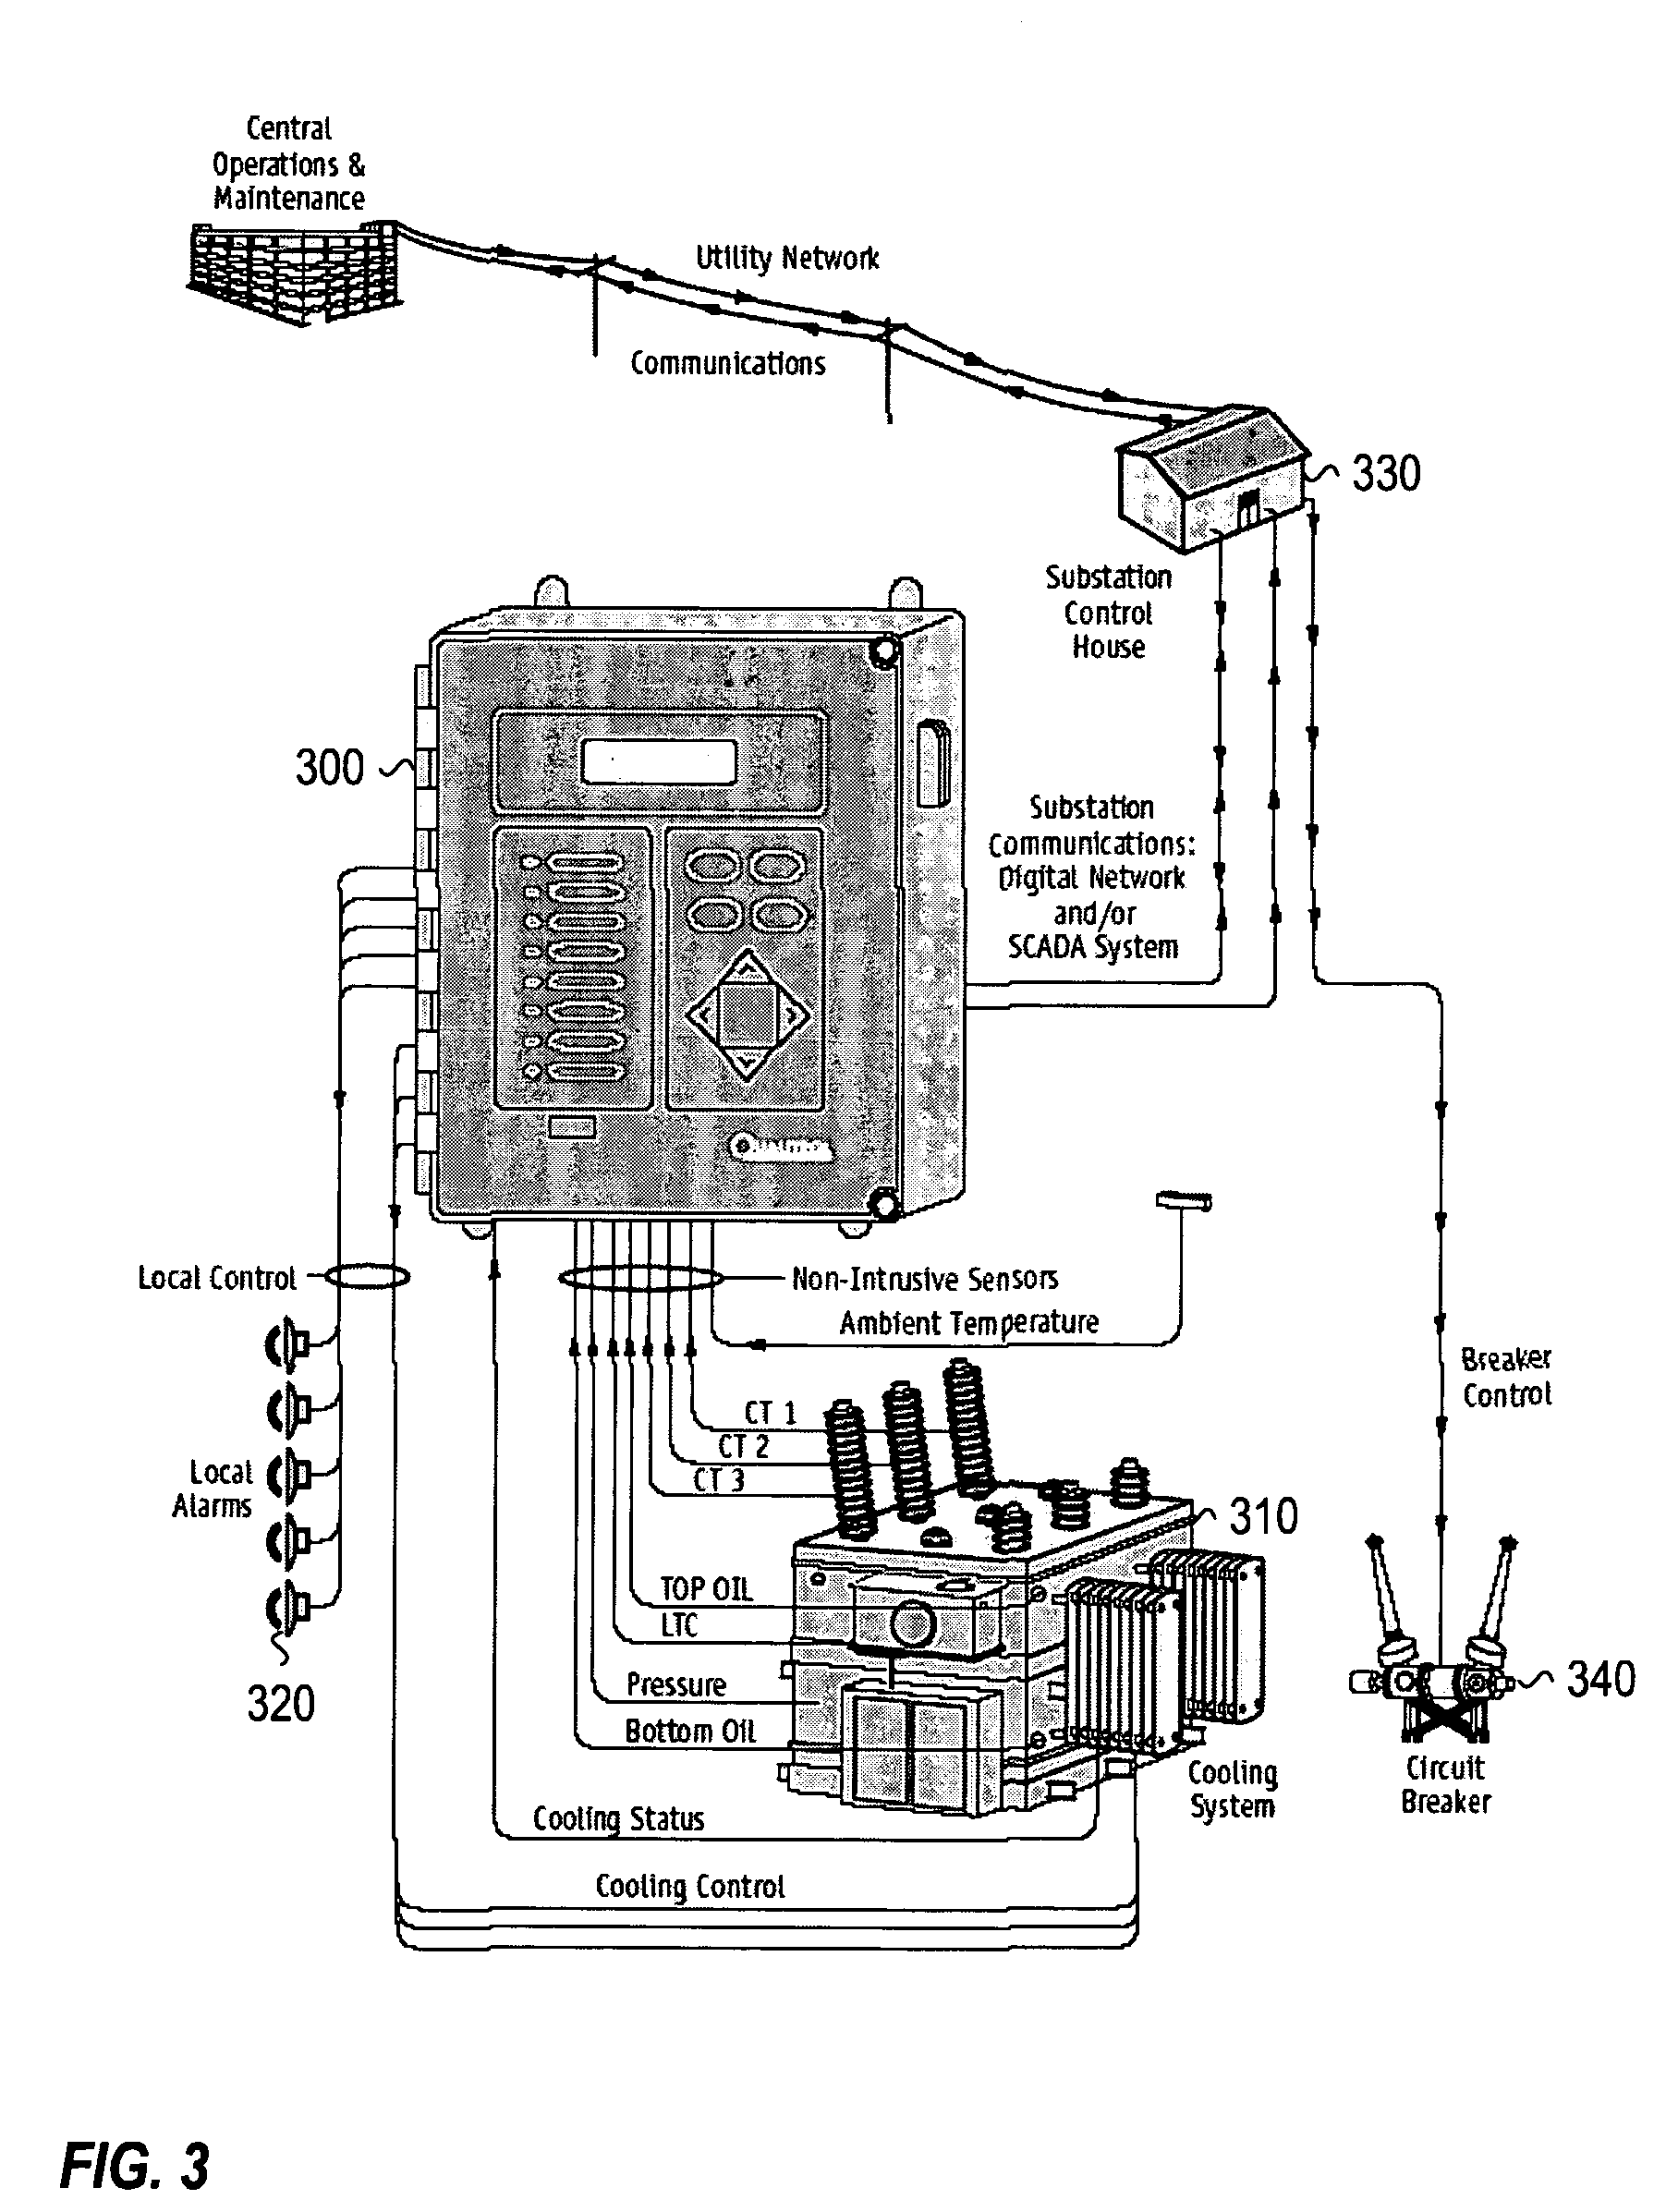 qualitrol 910 wiring diagram   28 wiring diagram images